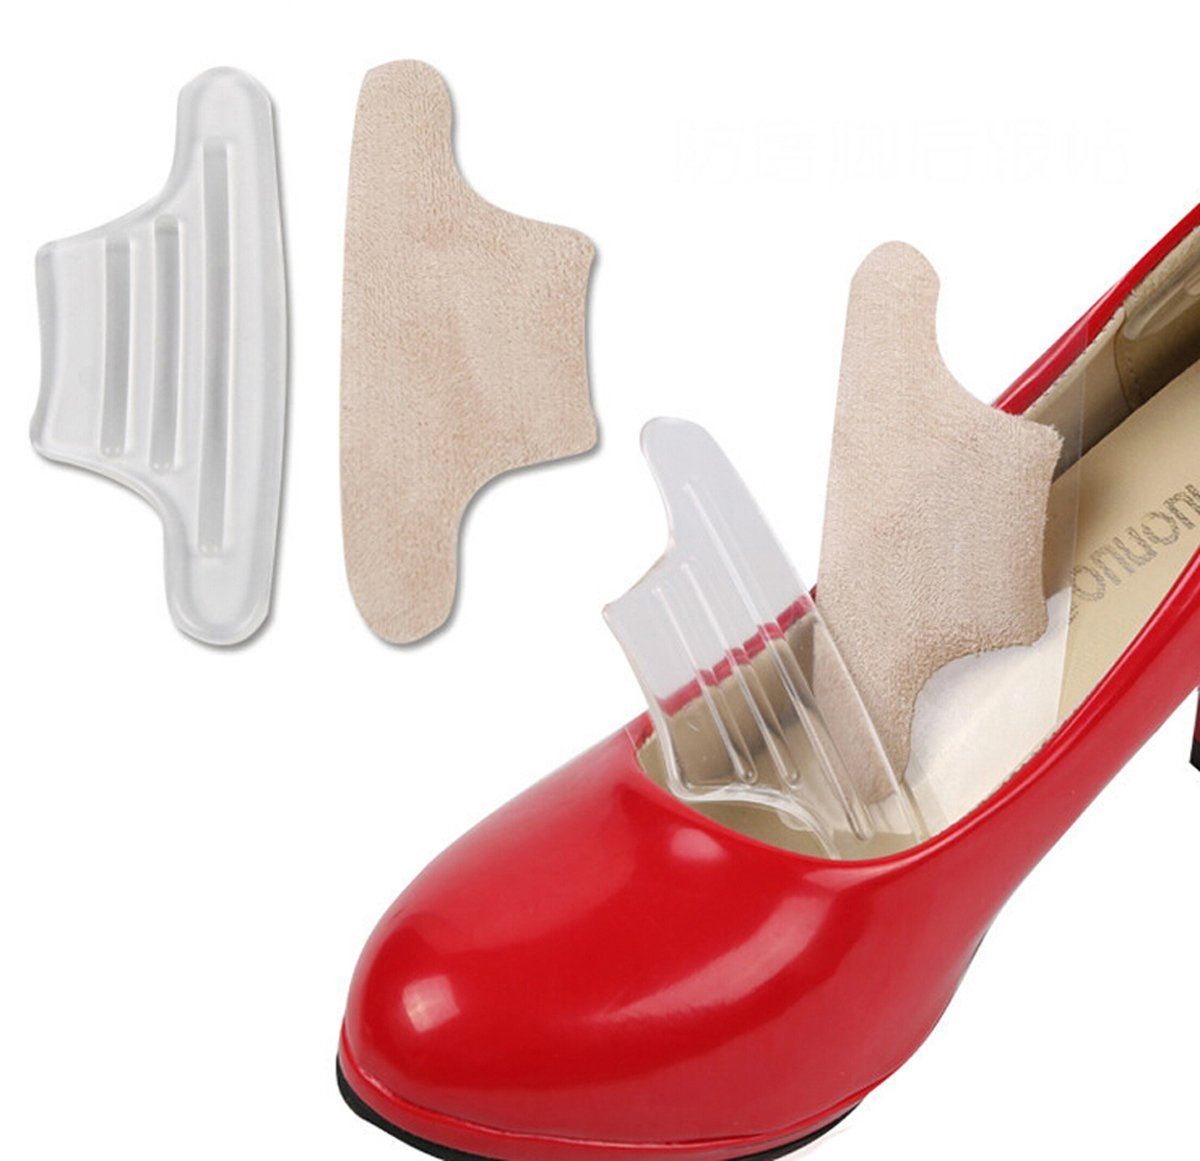 2PCS High Heel Shoe Cushion Insole Pad Grip Self Adhesive Inserts Back Blisters*